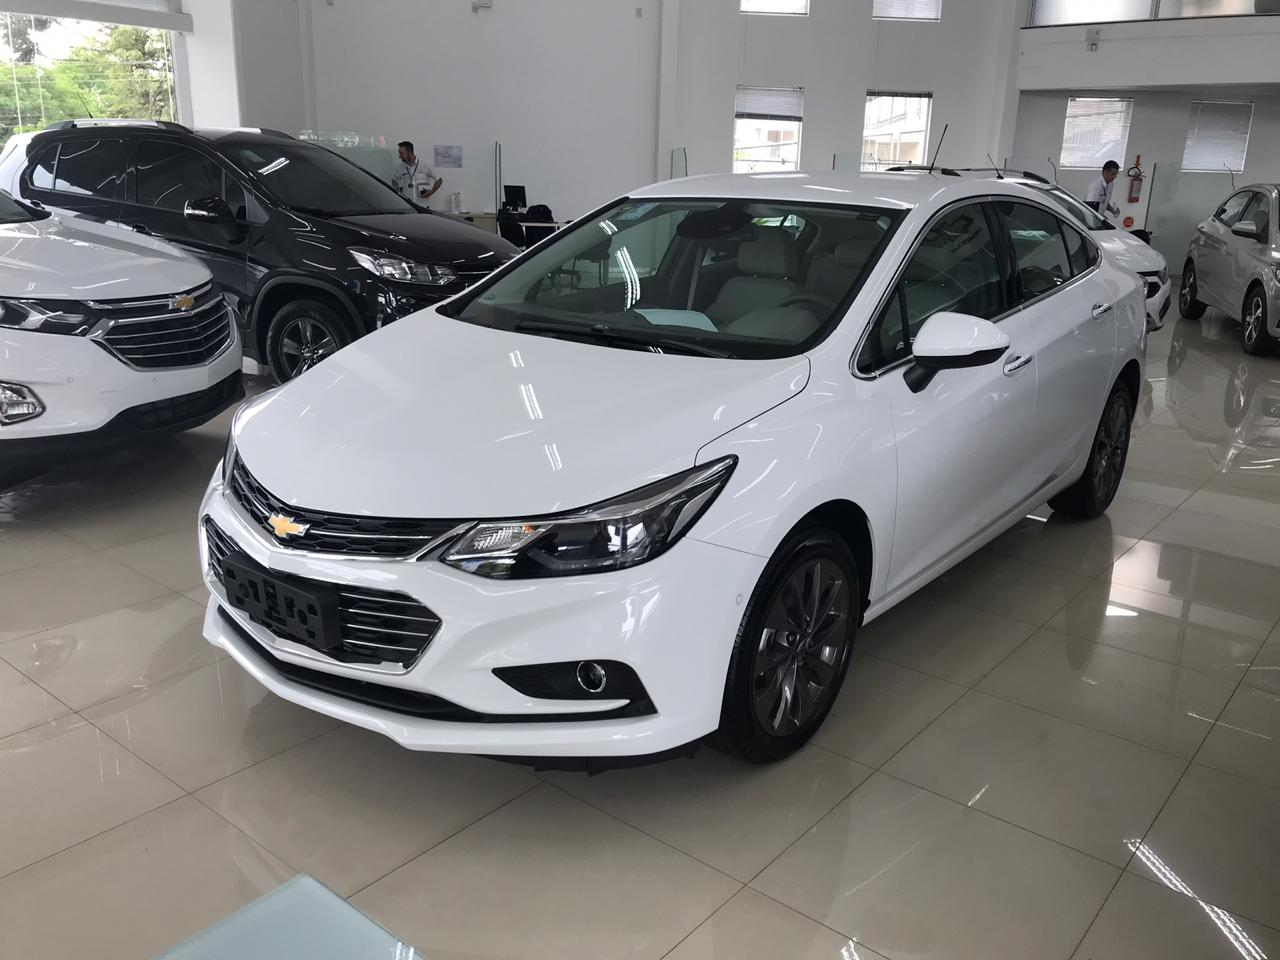 Chevrolet I/CHEV CRUZE LTZ NB AT ZERO KM 1.4 2018